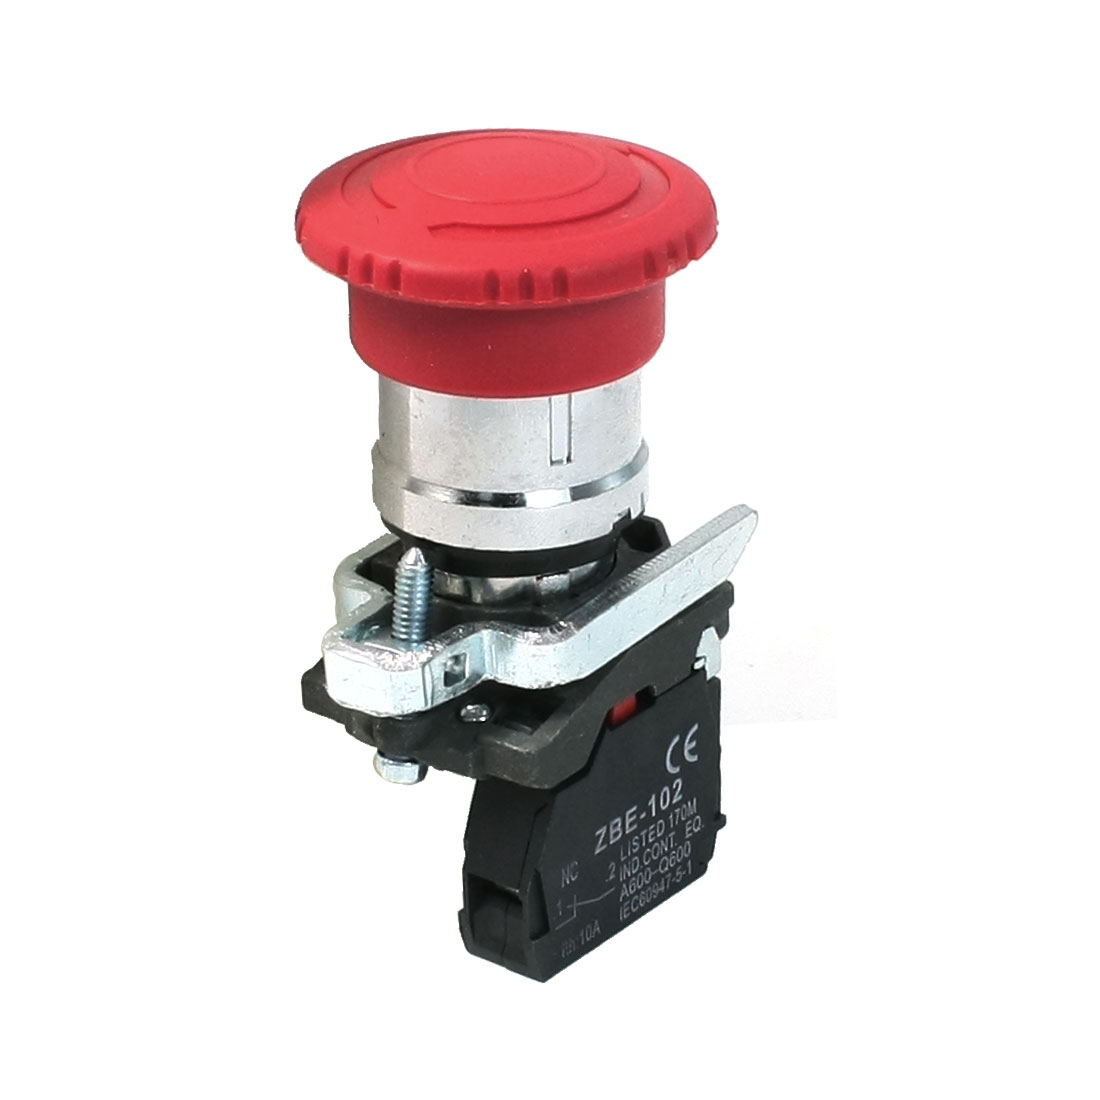 Red Mushroom Head 2-Terminal 1NC Emergency Push Button Switch AC 240V 6A